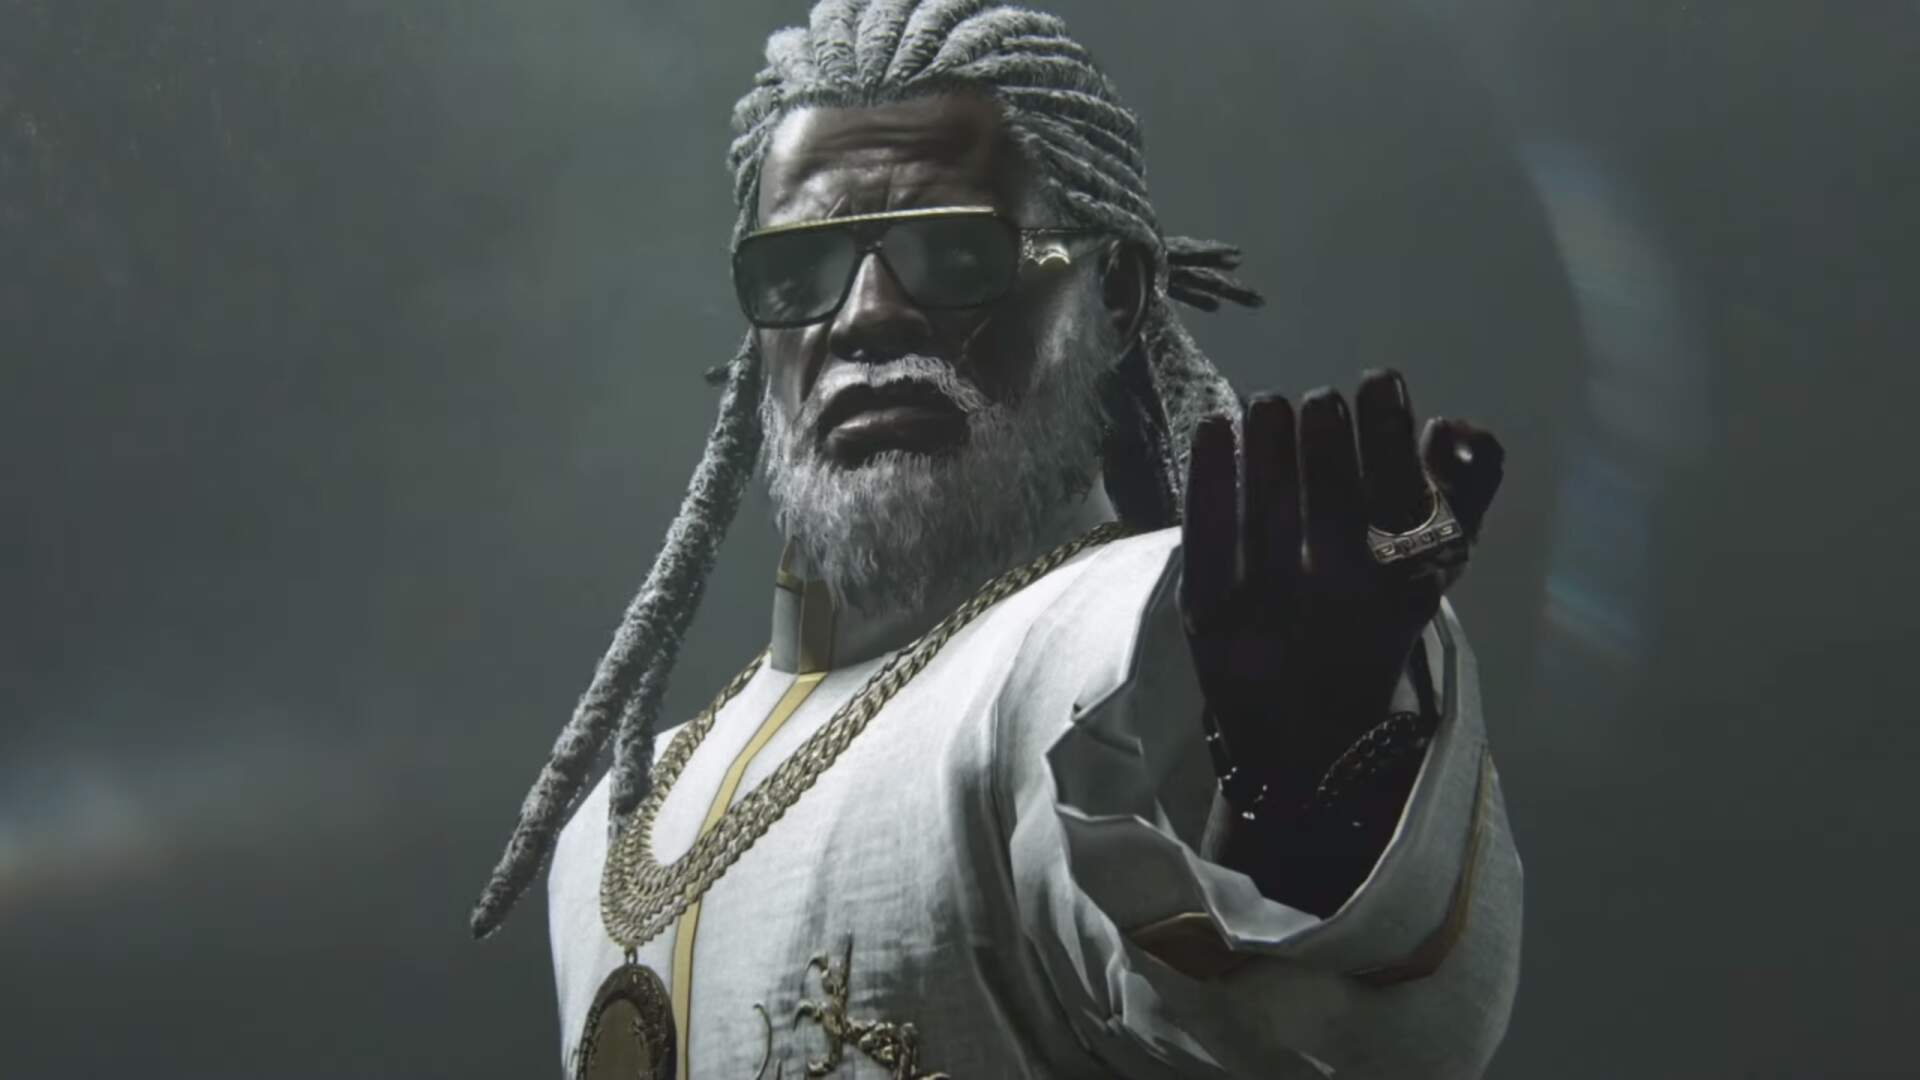 Tekken 7 Is Being Completely Dominated by Leroy, Its Newest DLC Character